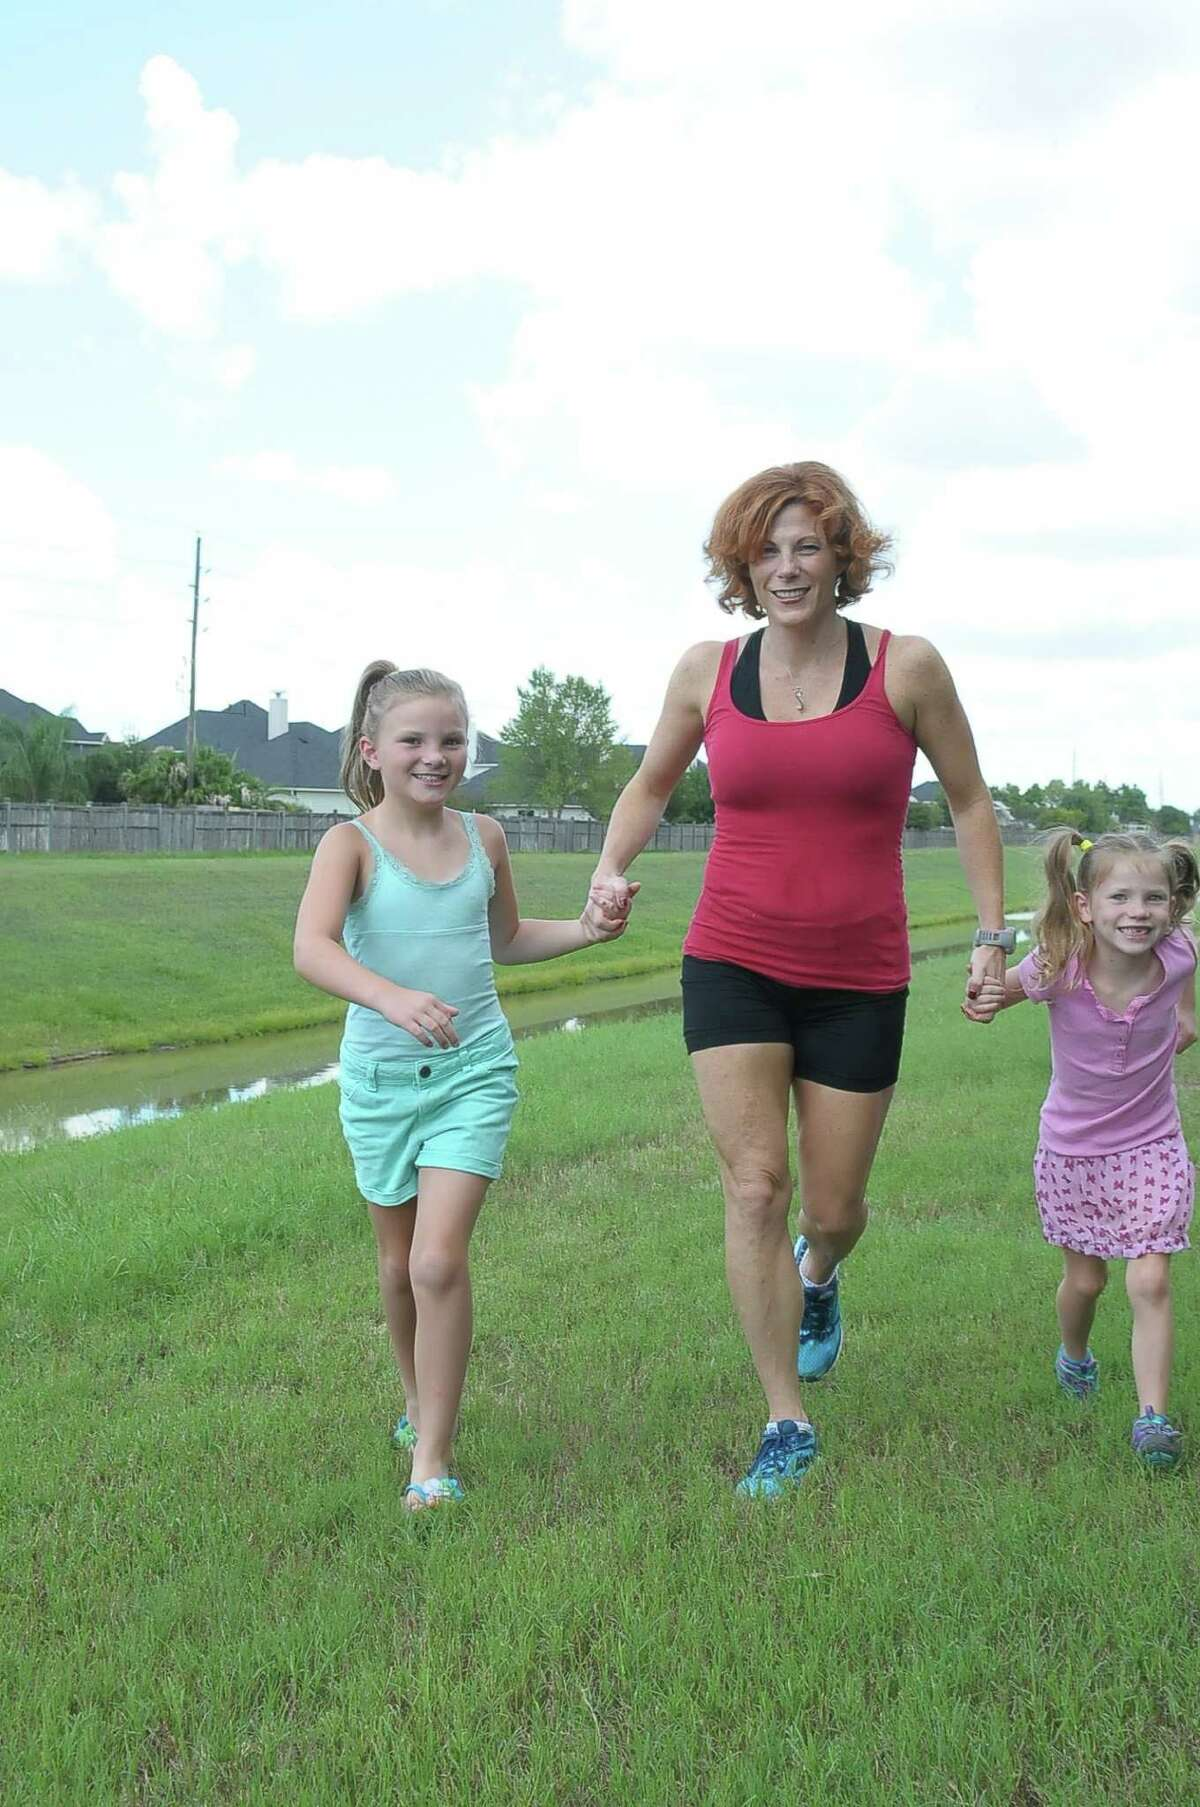 Kimberly Rensel runs with her daughters Sadie Rensel, 7½, and Savannah Rensel, 6, near their home in Katy. She is running to raise money to go on a mission to Africa. Kimberly Rensel runs with her daughters Sadie Rensel, 7½, and Savannah Rensel, 6, near their home in Katy. She is running to raise money to go on a mission to Africa.